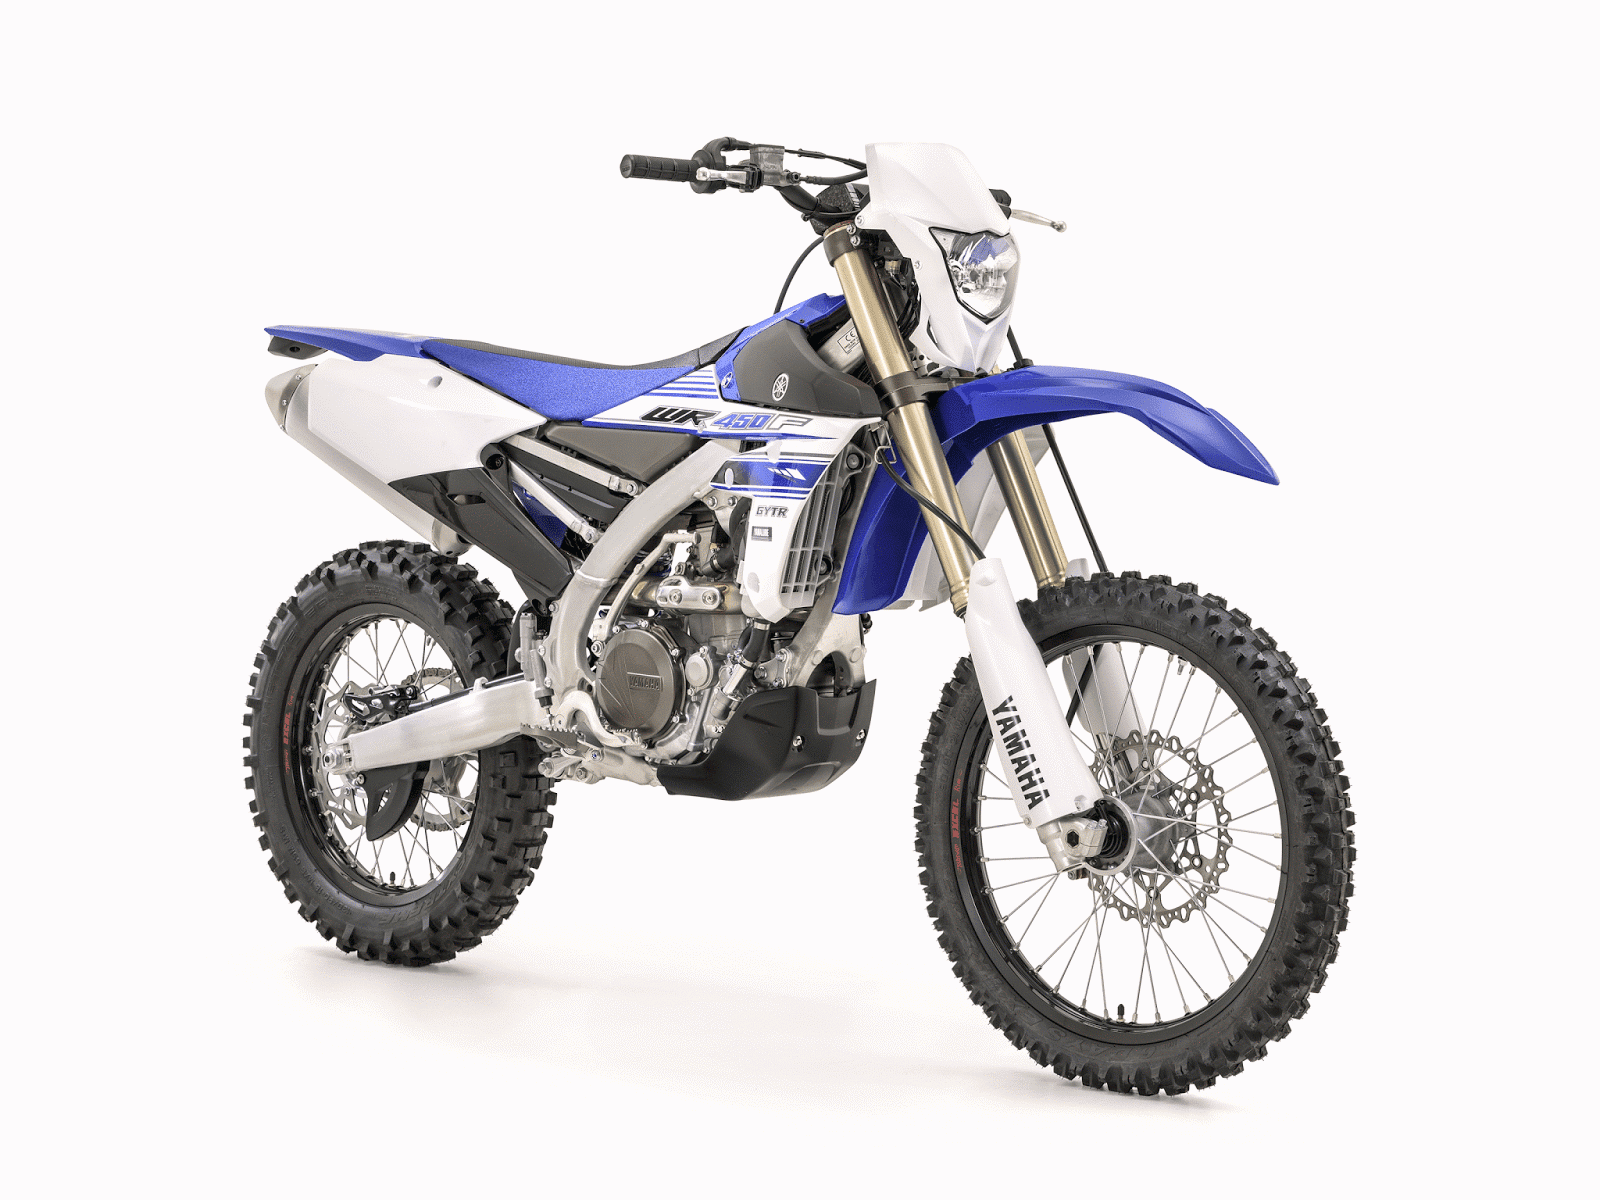 otolights yamaha wr 450 f 2016 ready to cross. Black Bedroom Furniture Sets. Home Design Ideas